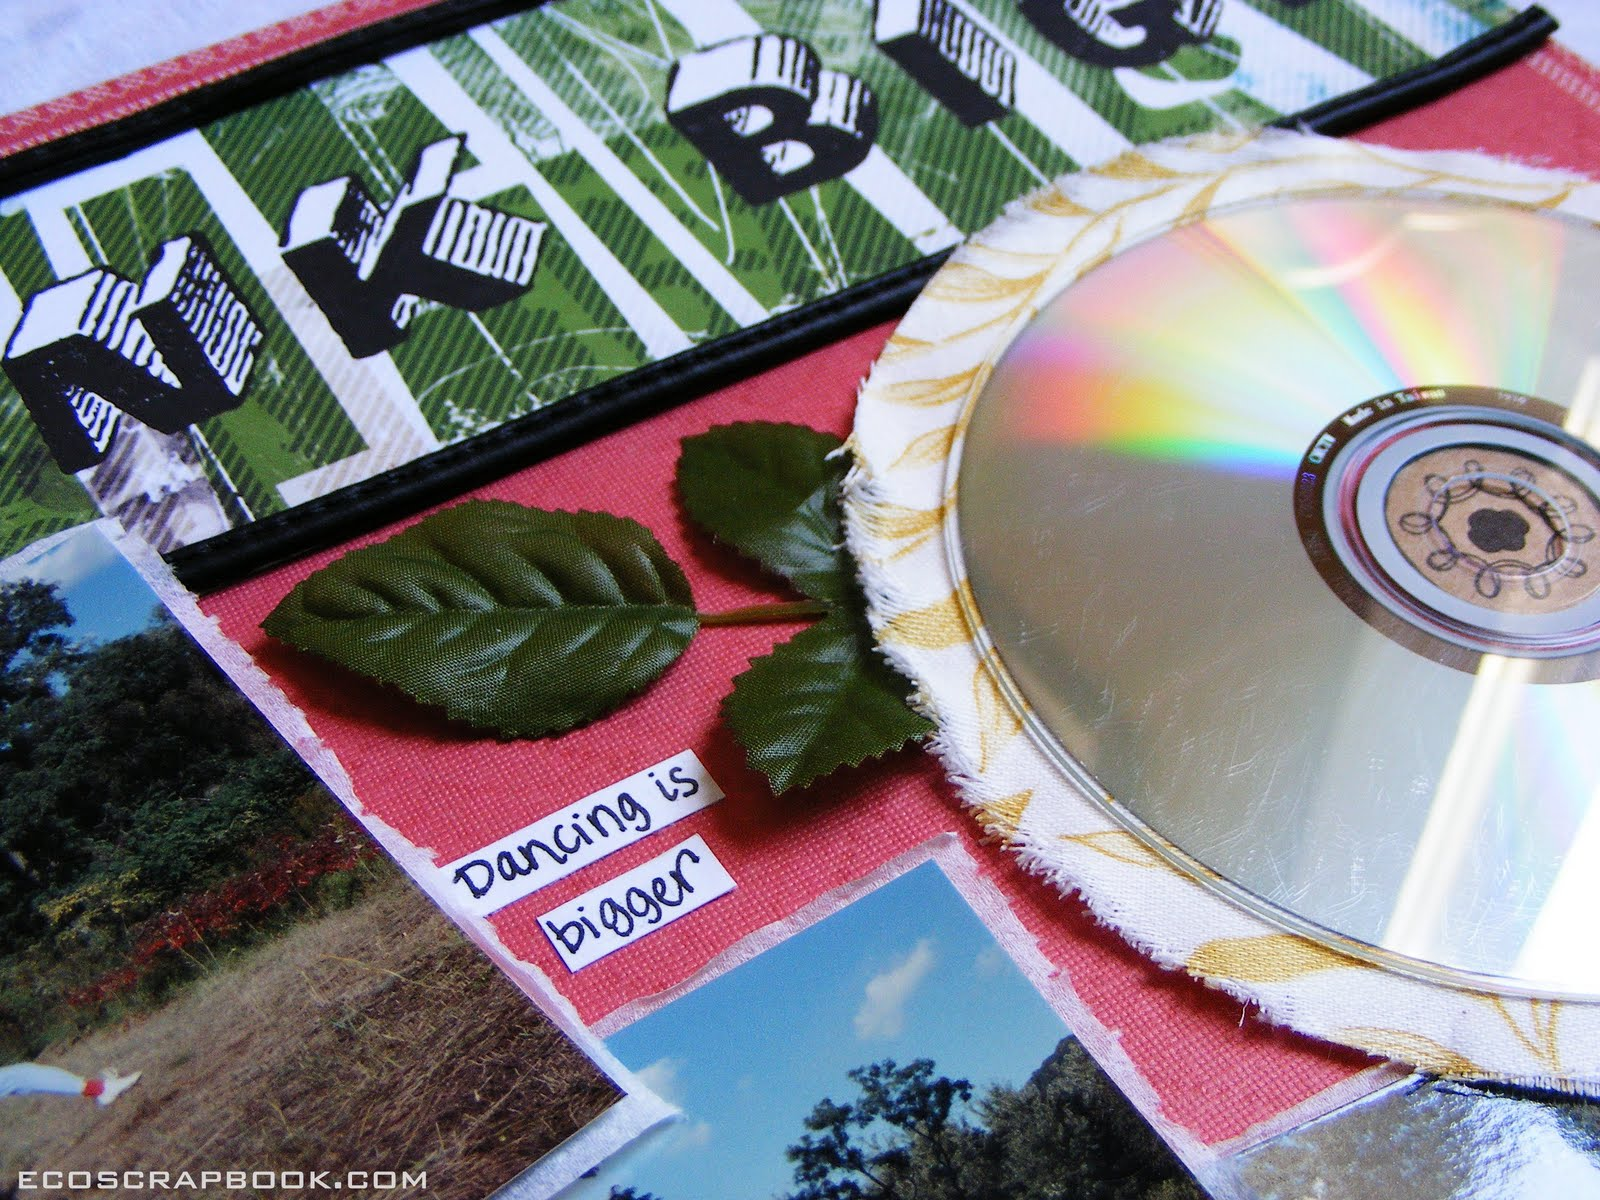 Scrapbook ideas recycled - Now Let S Go Back And Take A Look At The Layout Again And Count All The Things I Recycled